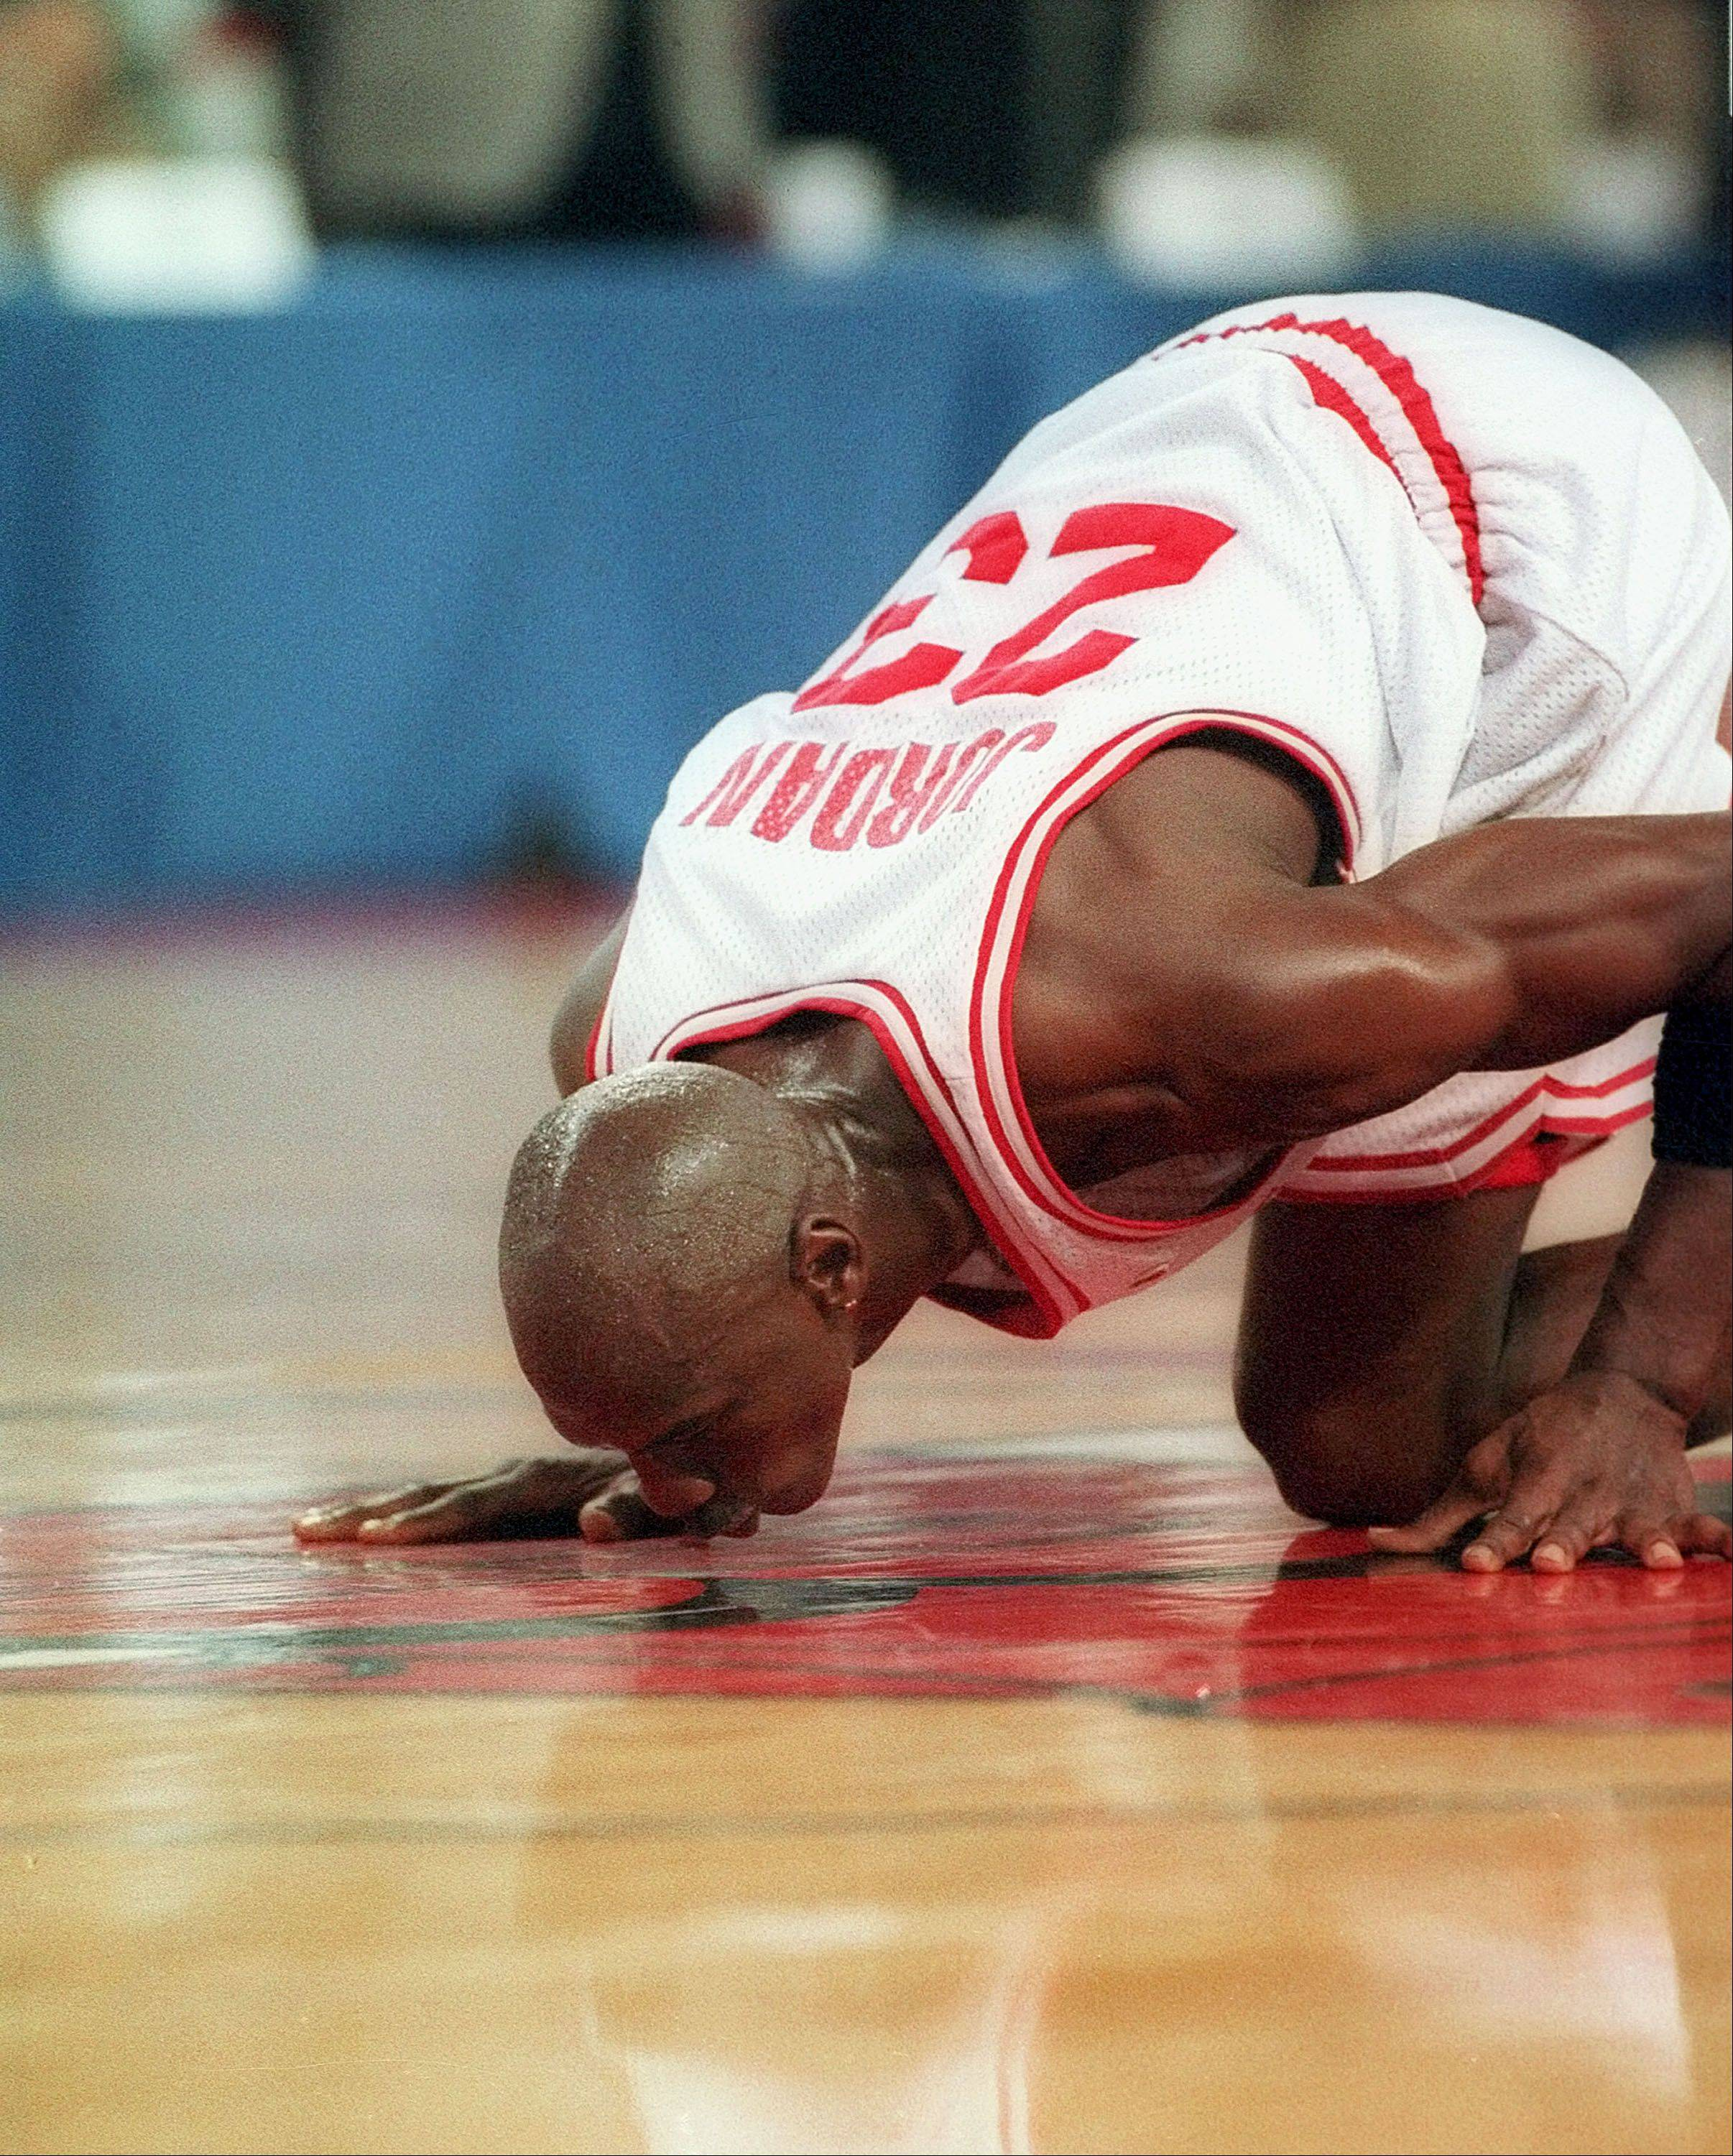 Michael Jordan kisses the basketball floor of the Chicago Stadium as he leaves it for the last time after a charity basketball game in Chicago, Ill., on Friday, Sept., 9, 1994. Jordan played his first three championships seasons at Chicago stadium before a stint playing minor league baseball with the Birmingham Barons. Chicago Stadium was to be replaced by the new United Center across the street.